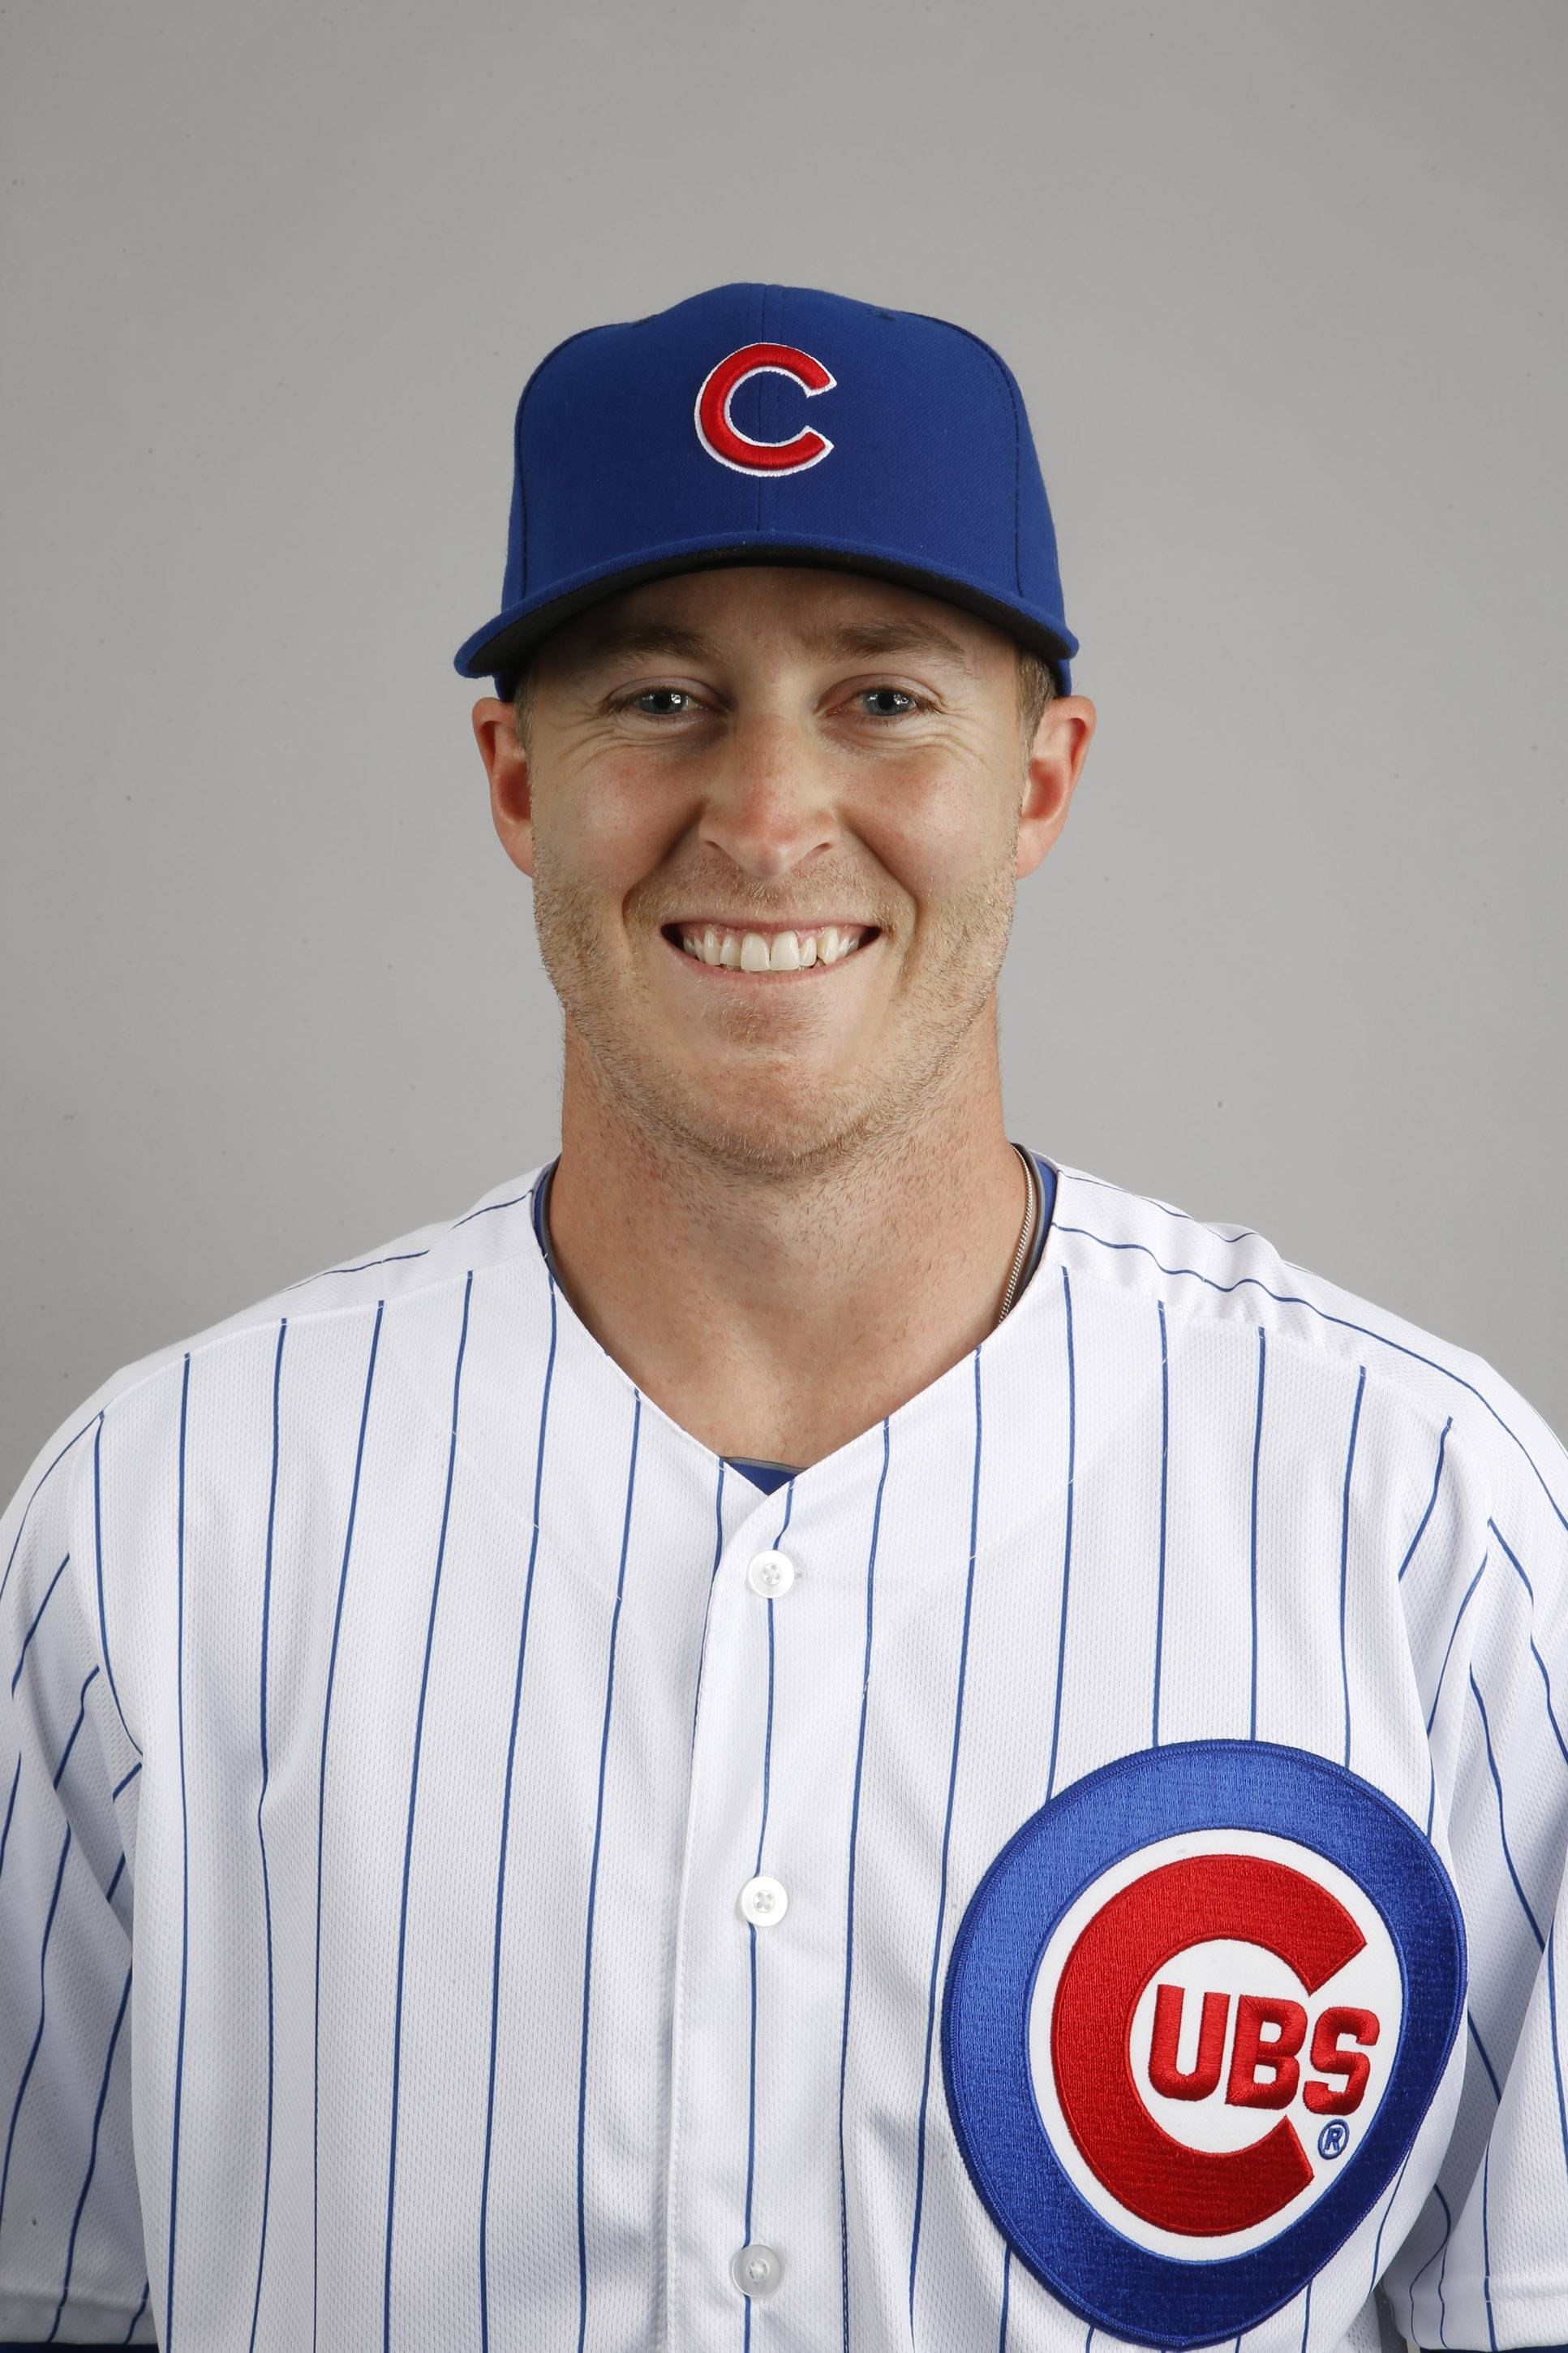 For the Saturday doubleheader, the Cubs will go with right-hander Dallas Beeler, who will be called up from Class AAA Iowa. It will be Beeler's major-league debut.